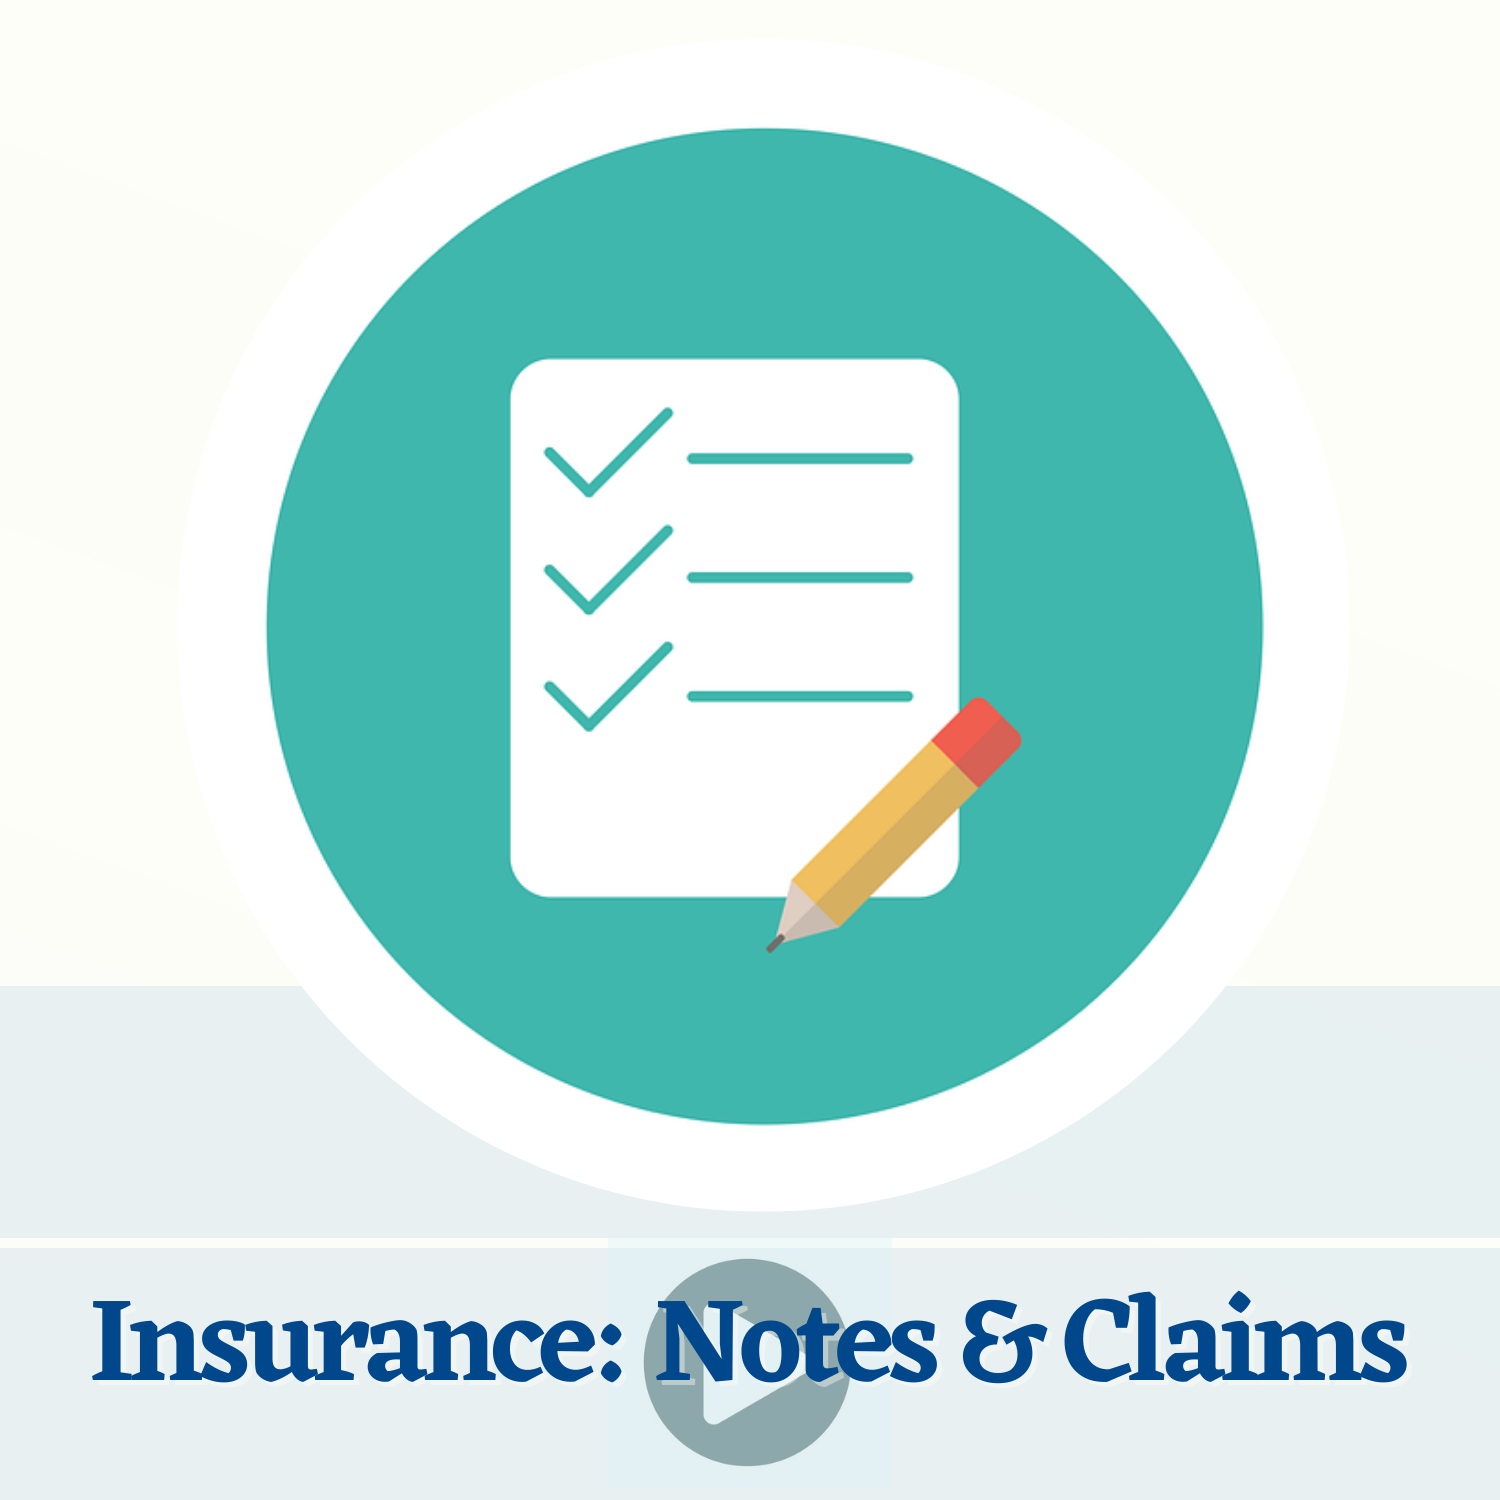 Insurance Notes & Claims